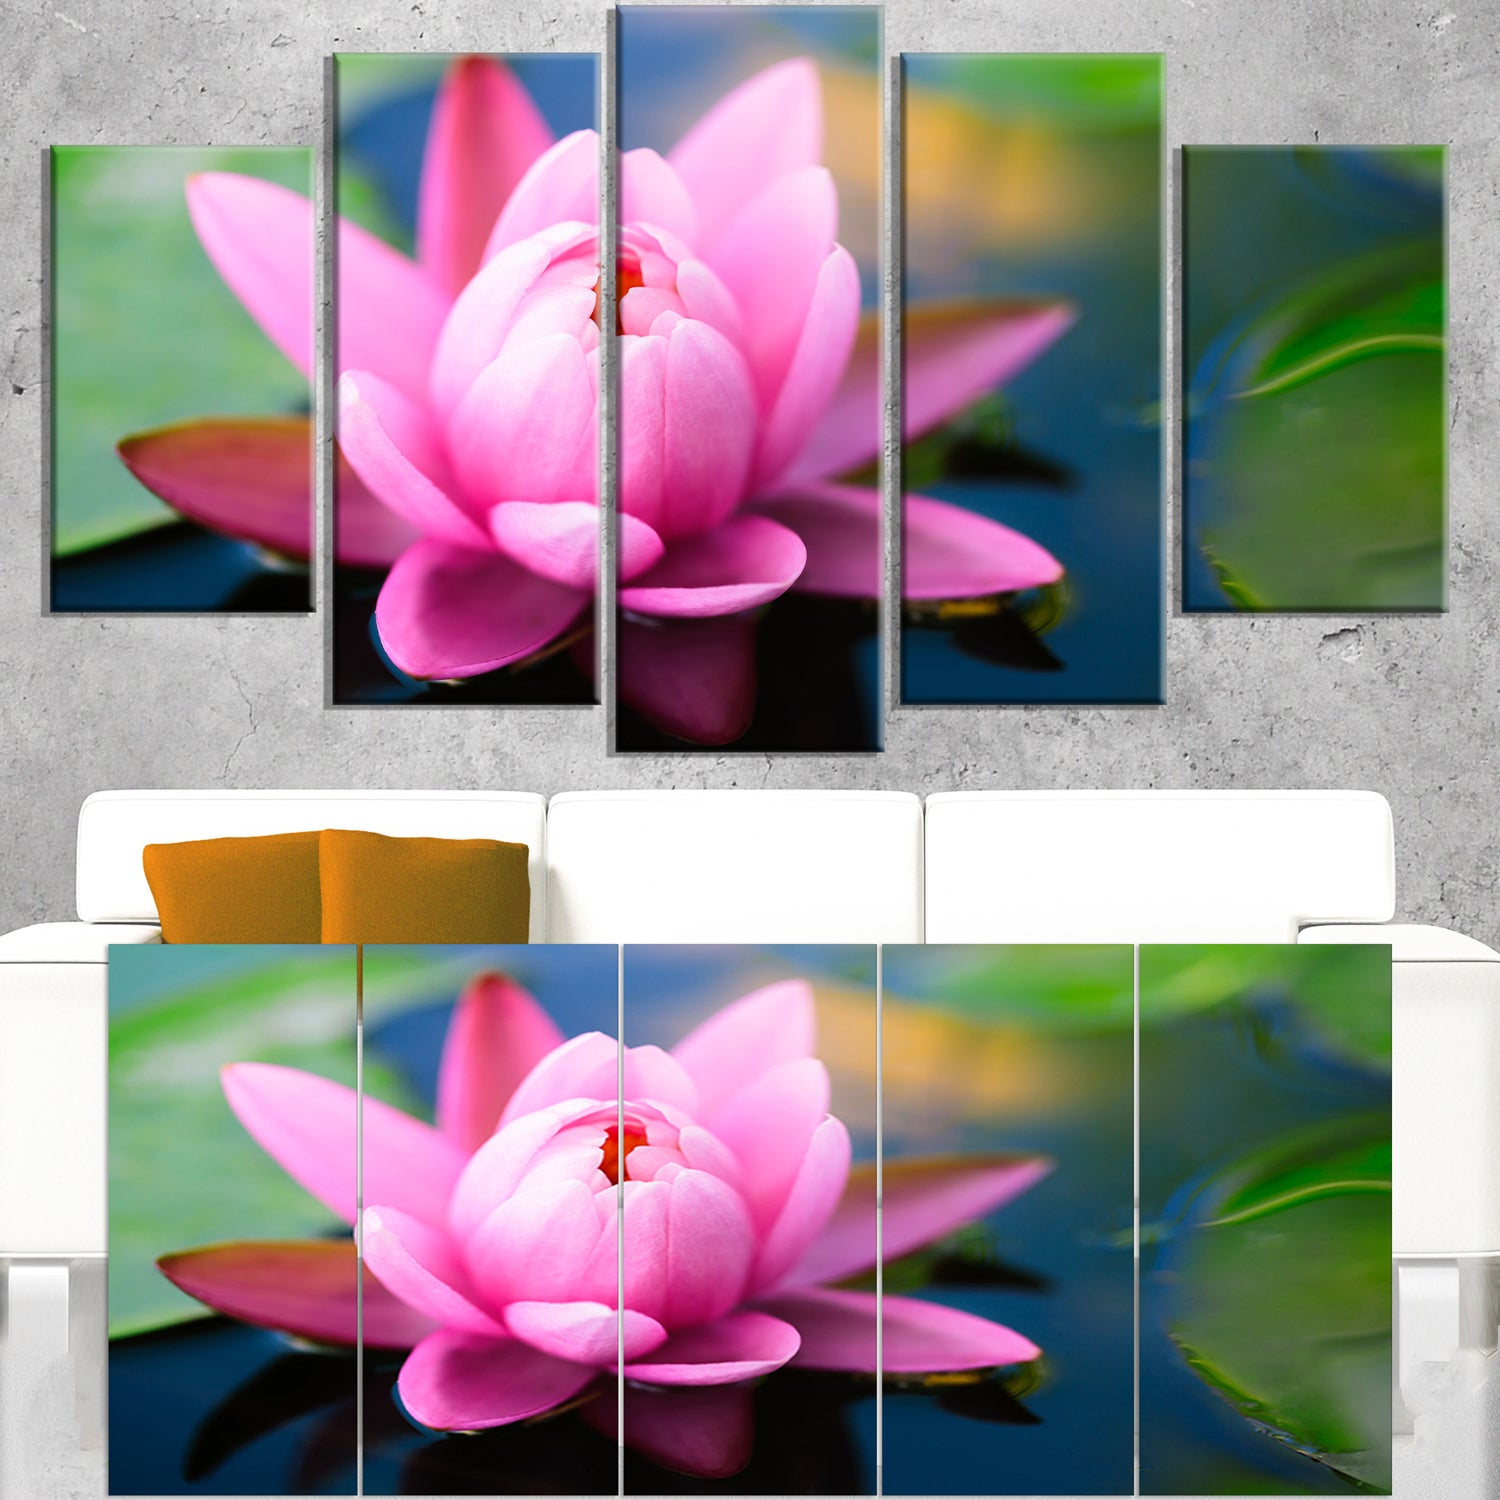 Shop large lotus flower in the pond large floral canvas art print shop large lotus flower in the pond large floral canvas art print blue on sale free shipping today overstock 12310229 mightylinksfo